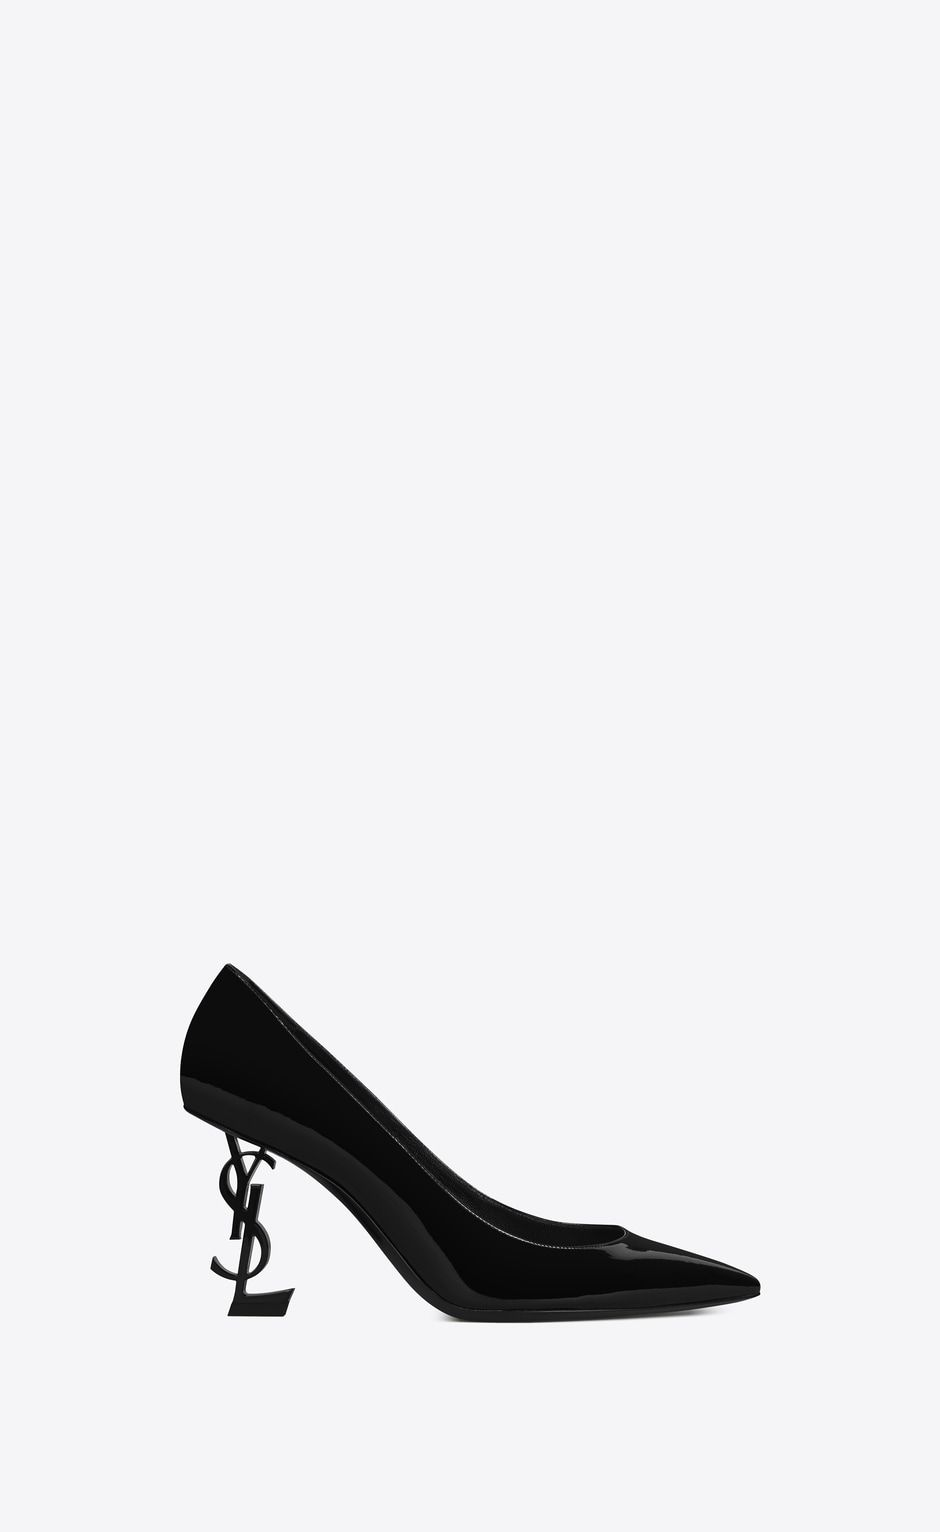 59ac9d96e SAINT LAURENT YSL heels Woman OPYUM 85 Pump in Black Patent Leather and  Chrome V4